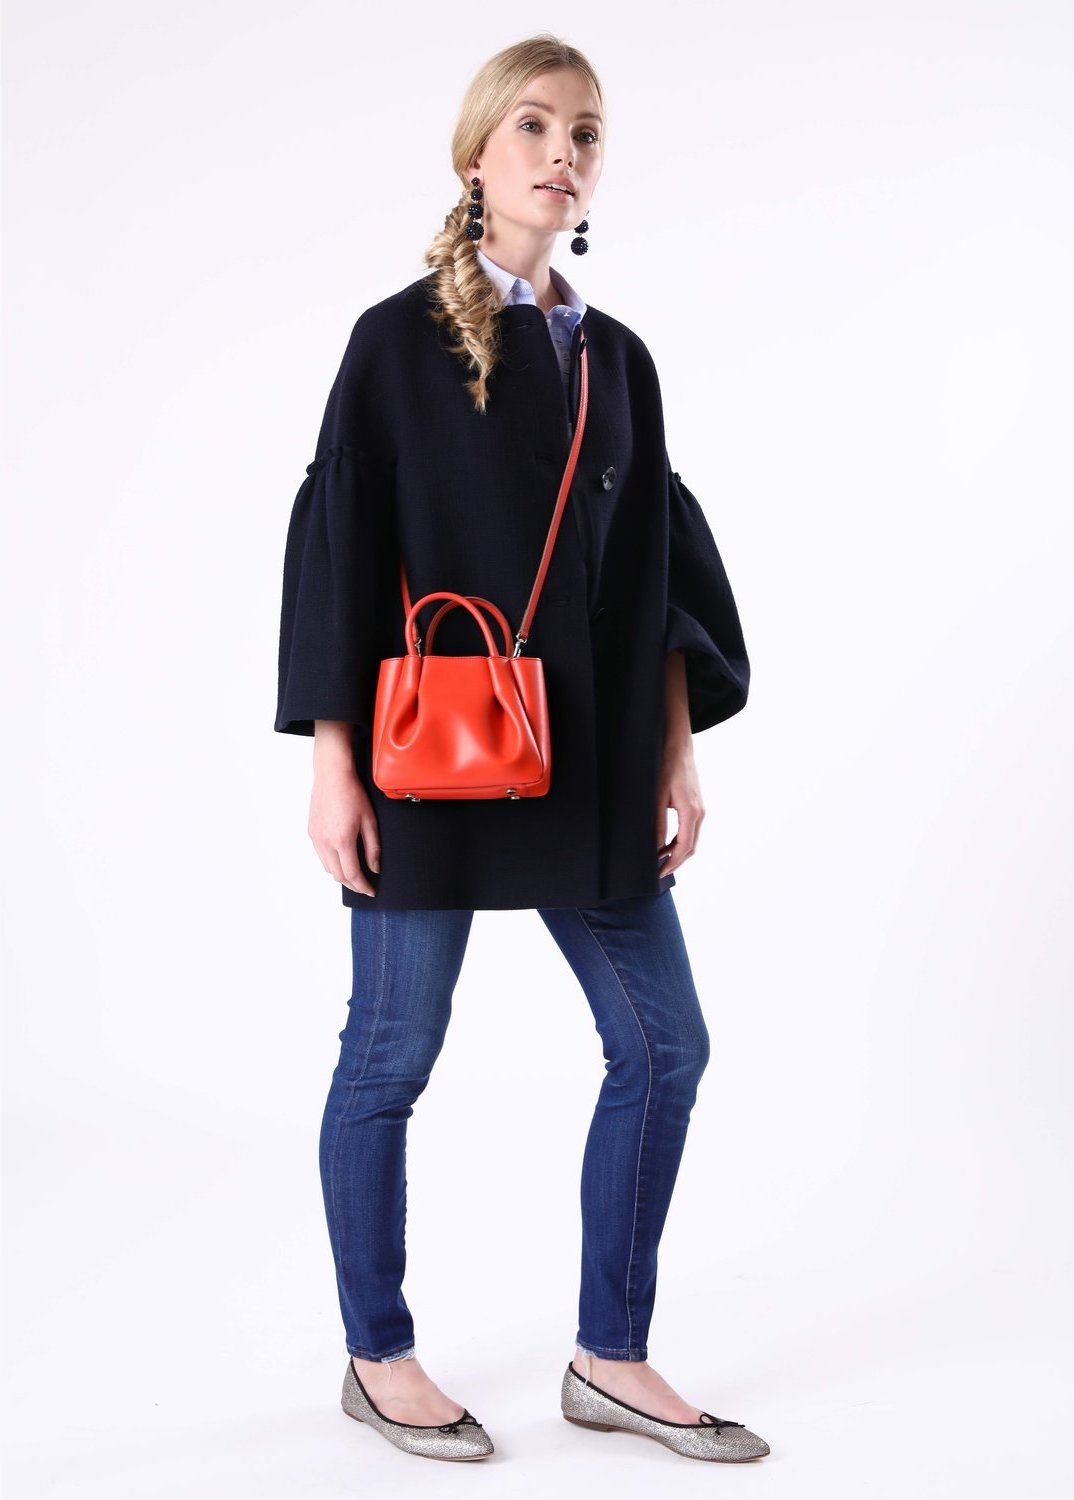 Alexandra+de+Curtis_Mini+Ruched+Tote+Orange+strap+square.jpg